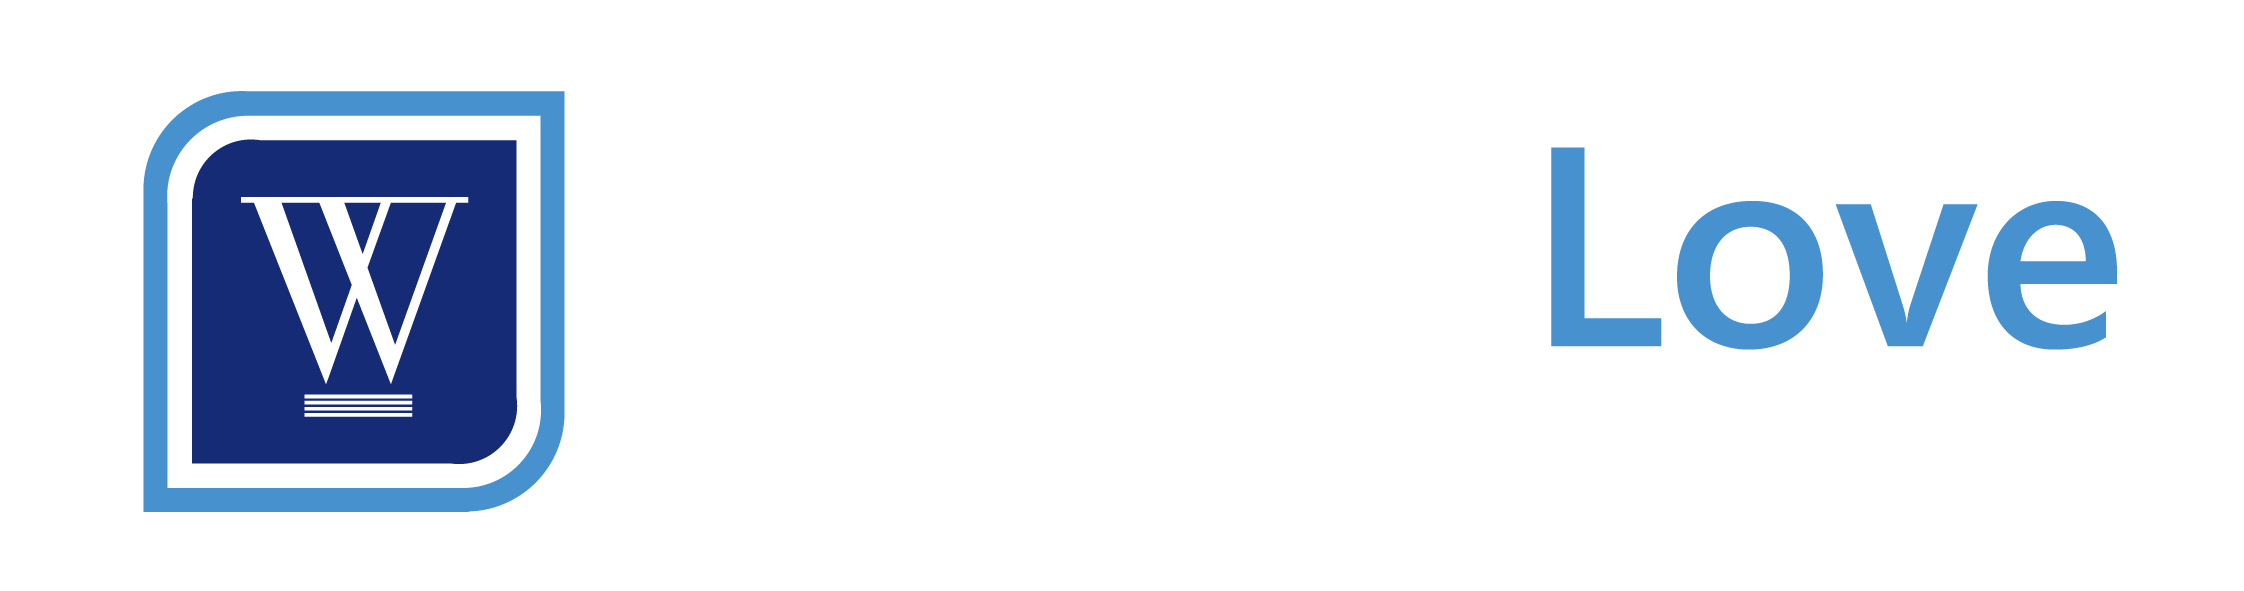 Walker Love logo